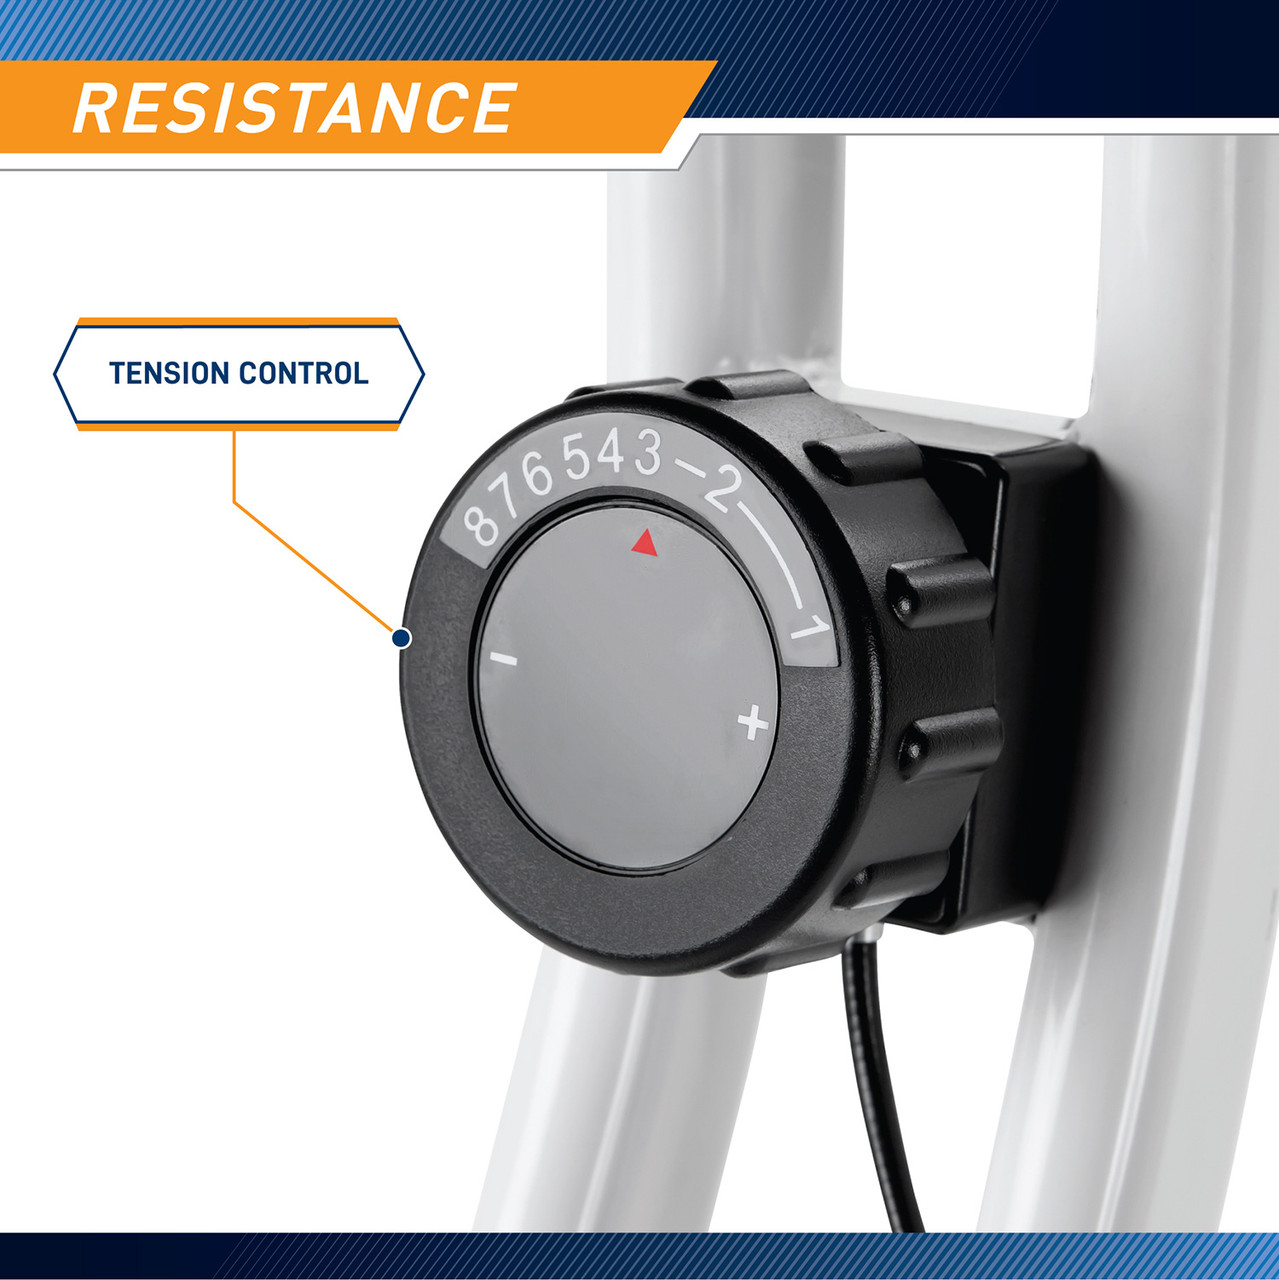 Easily adjust the resistance on the Foldable Upright Bike Marcy NS-652 by simply turning the resistance knob